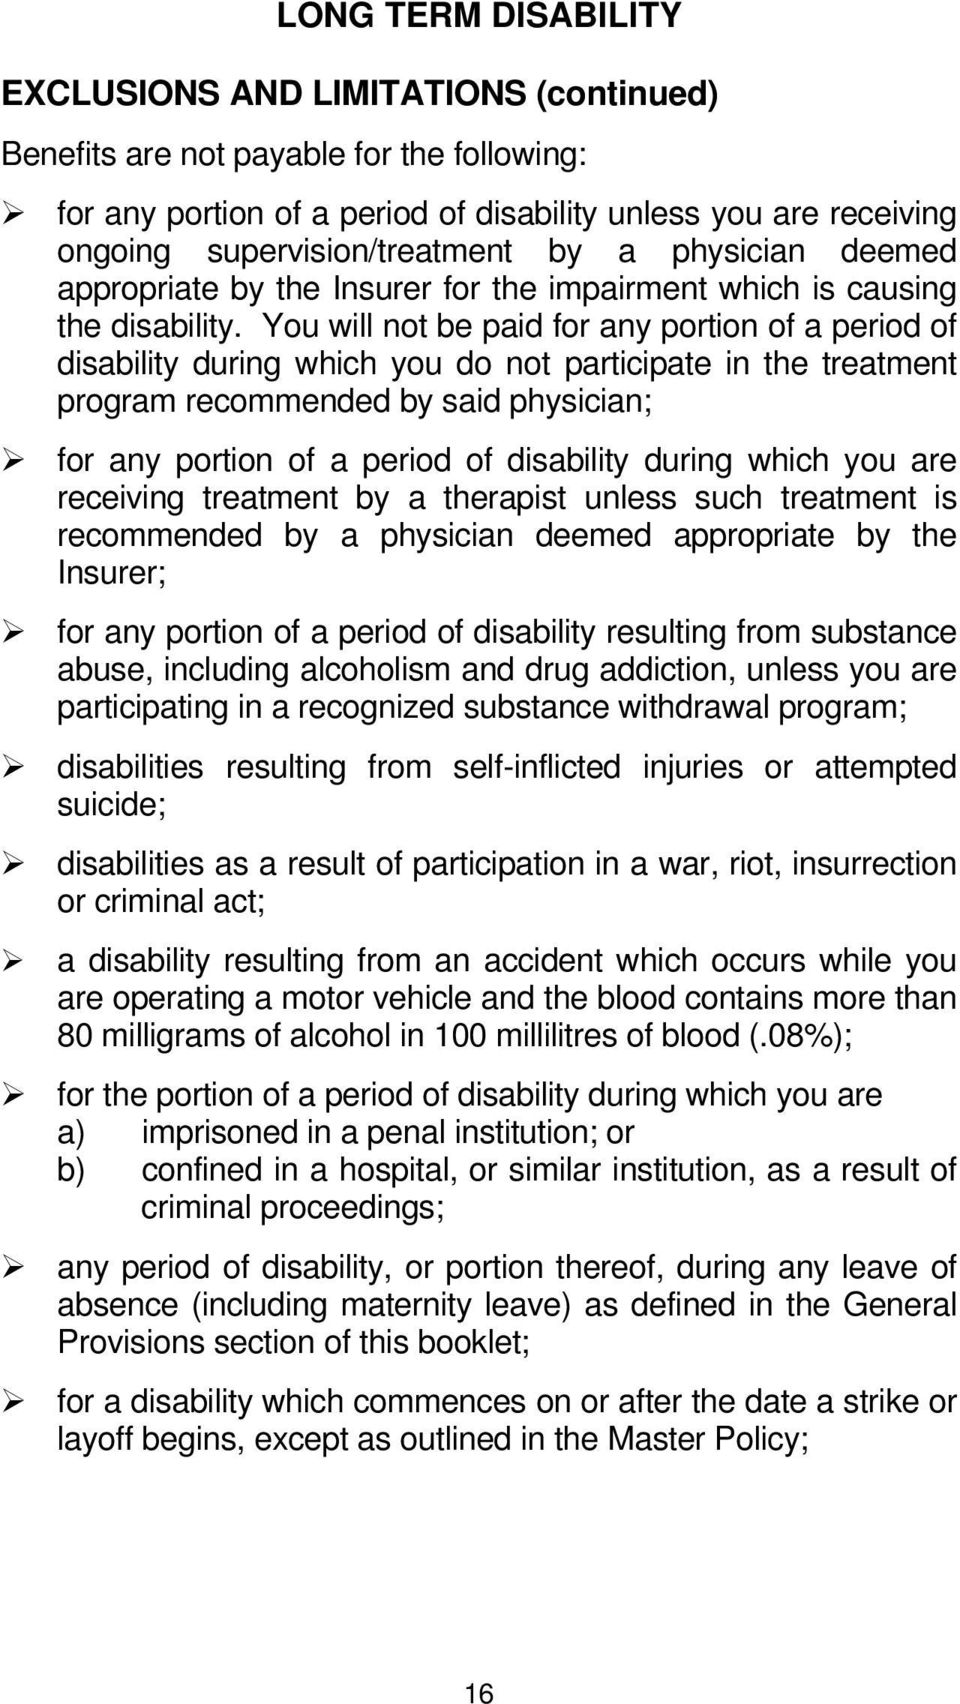 You will not be paid for any portion of a period of disability during which you do not participate in the treatment program recommended by said physician; for any portion of a period of disability